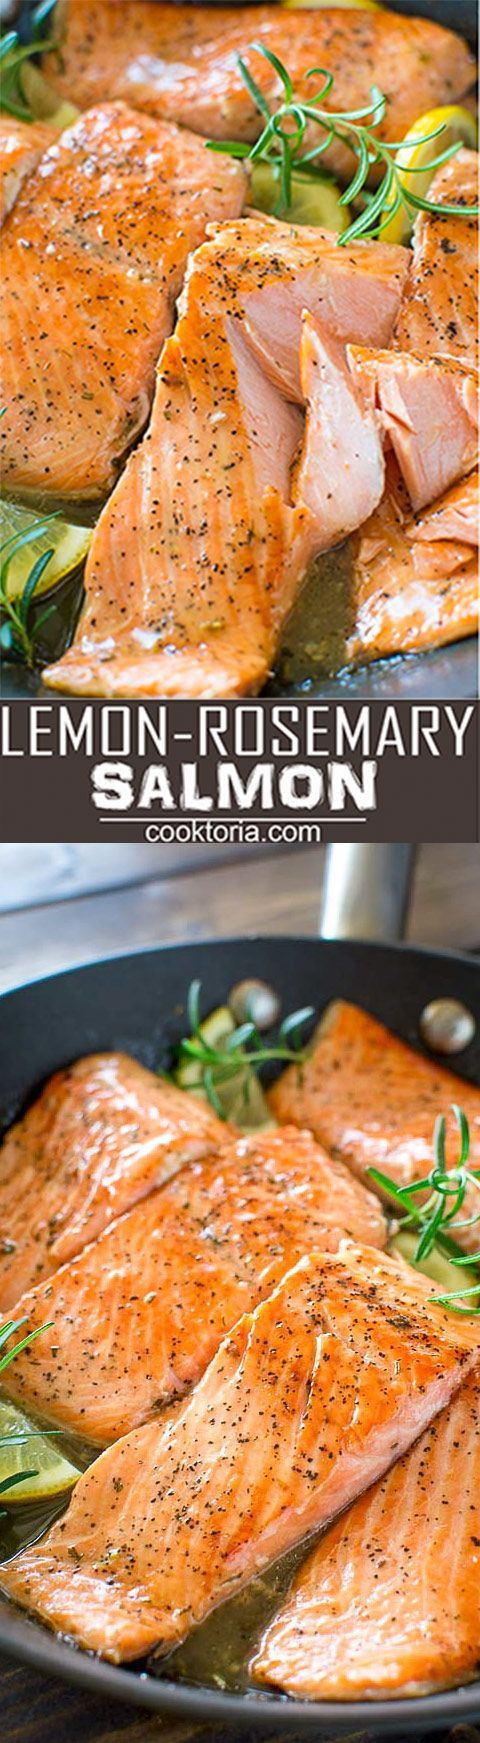 Flaky Salmon Cooked To Perfection In Rich Lemon Rosemary Sauce Ready In 15  Minutes!